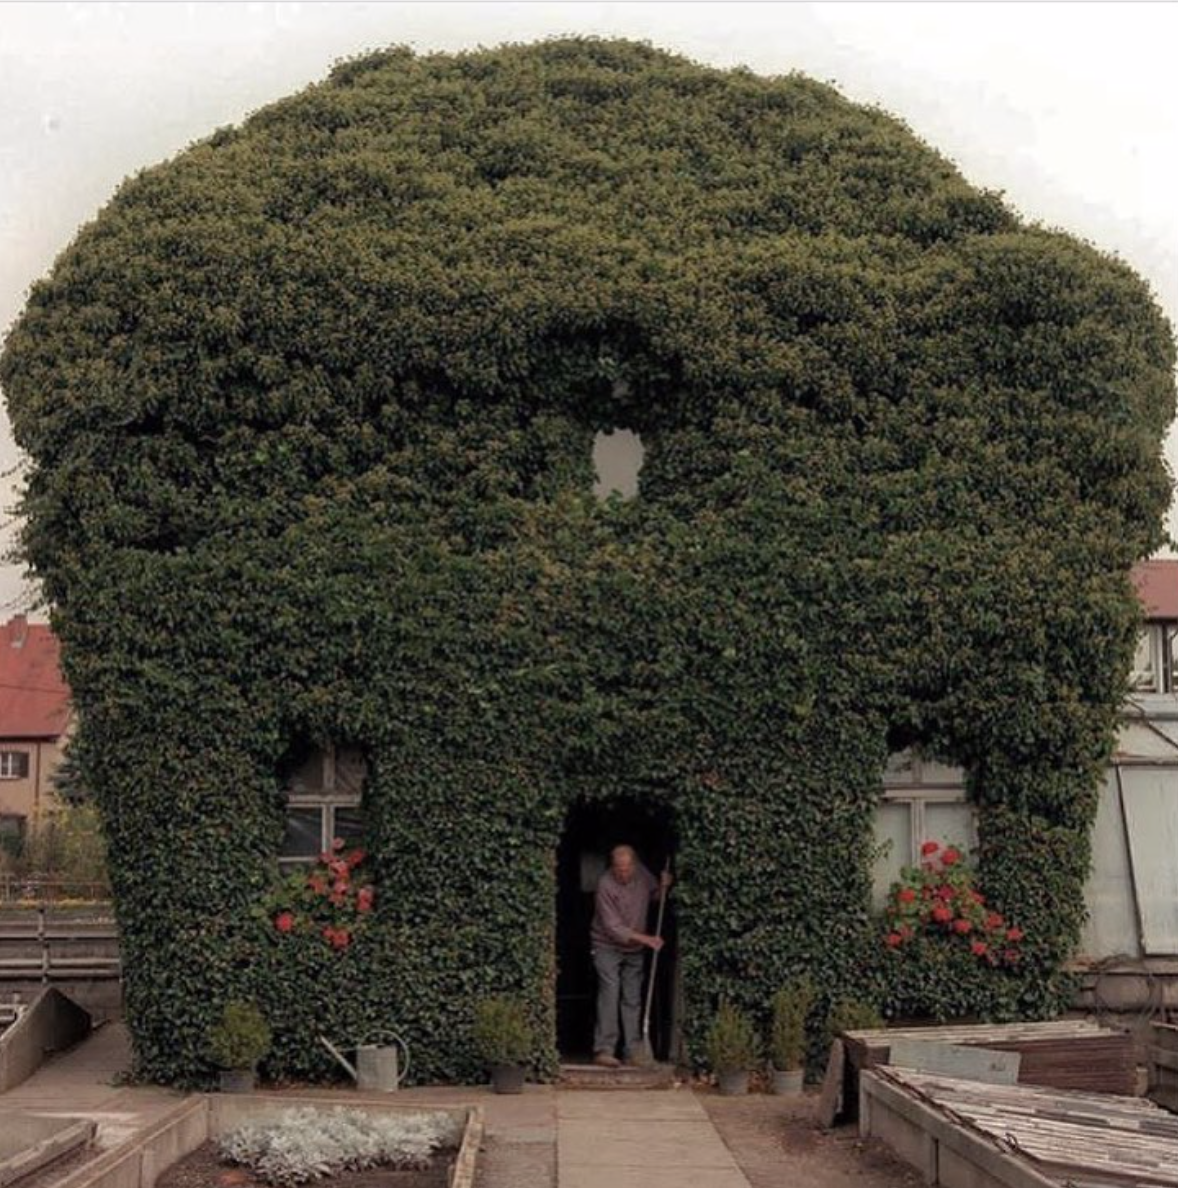 Ivy covered house in Hammelburg, Germany by Wolf-Dietrich Weissbach